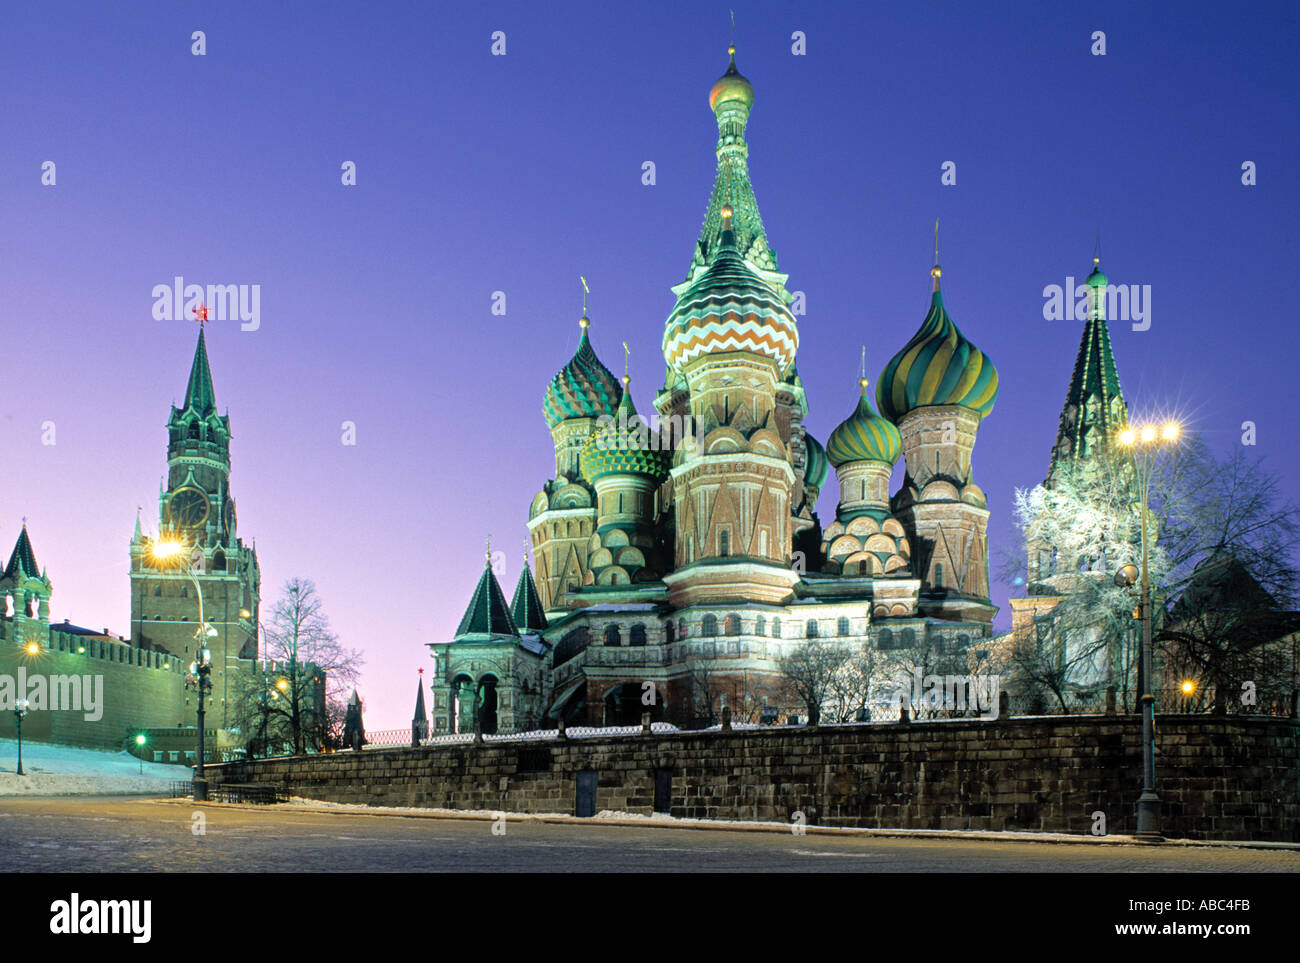 St. Basil's Church, Red Square, Moscow, Russia - Stock Image